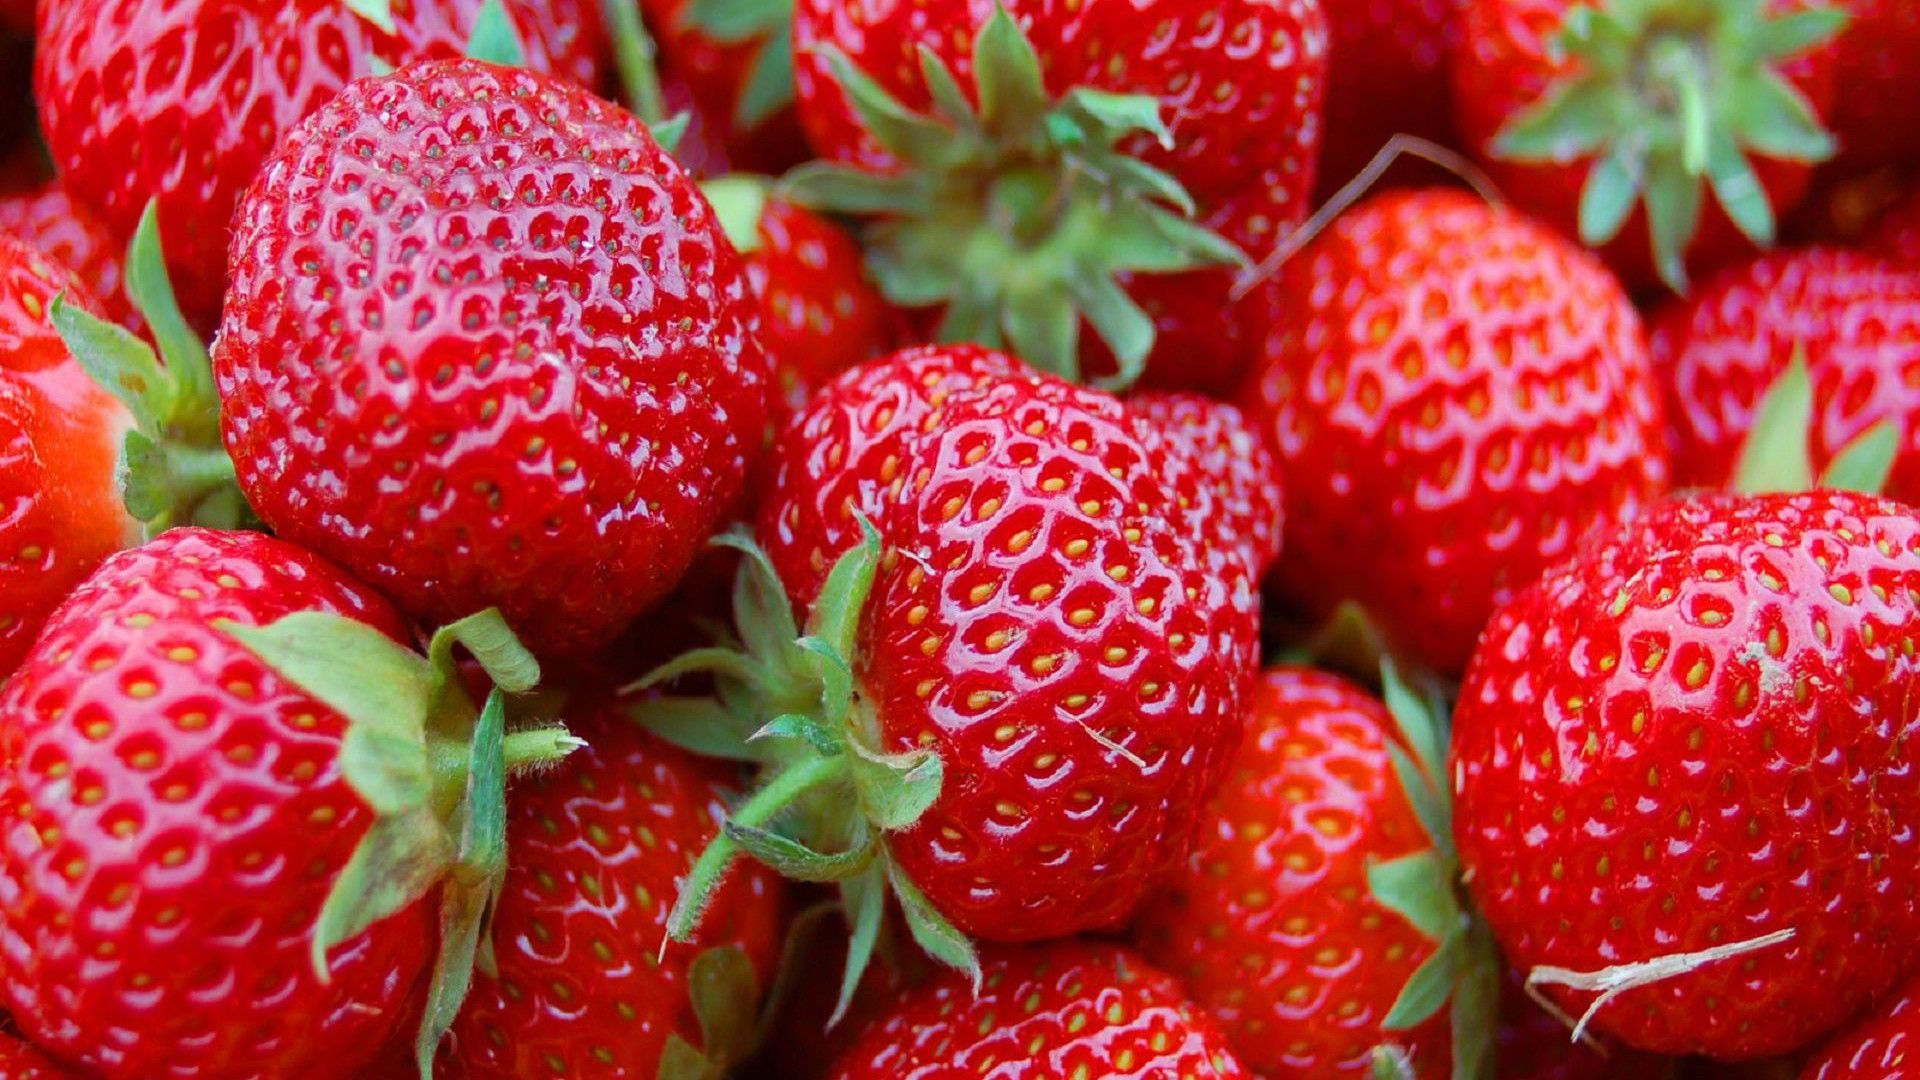 Fruit wallpaper download free - Strawberry Hd Wallpaper Free Download For Mobile